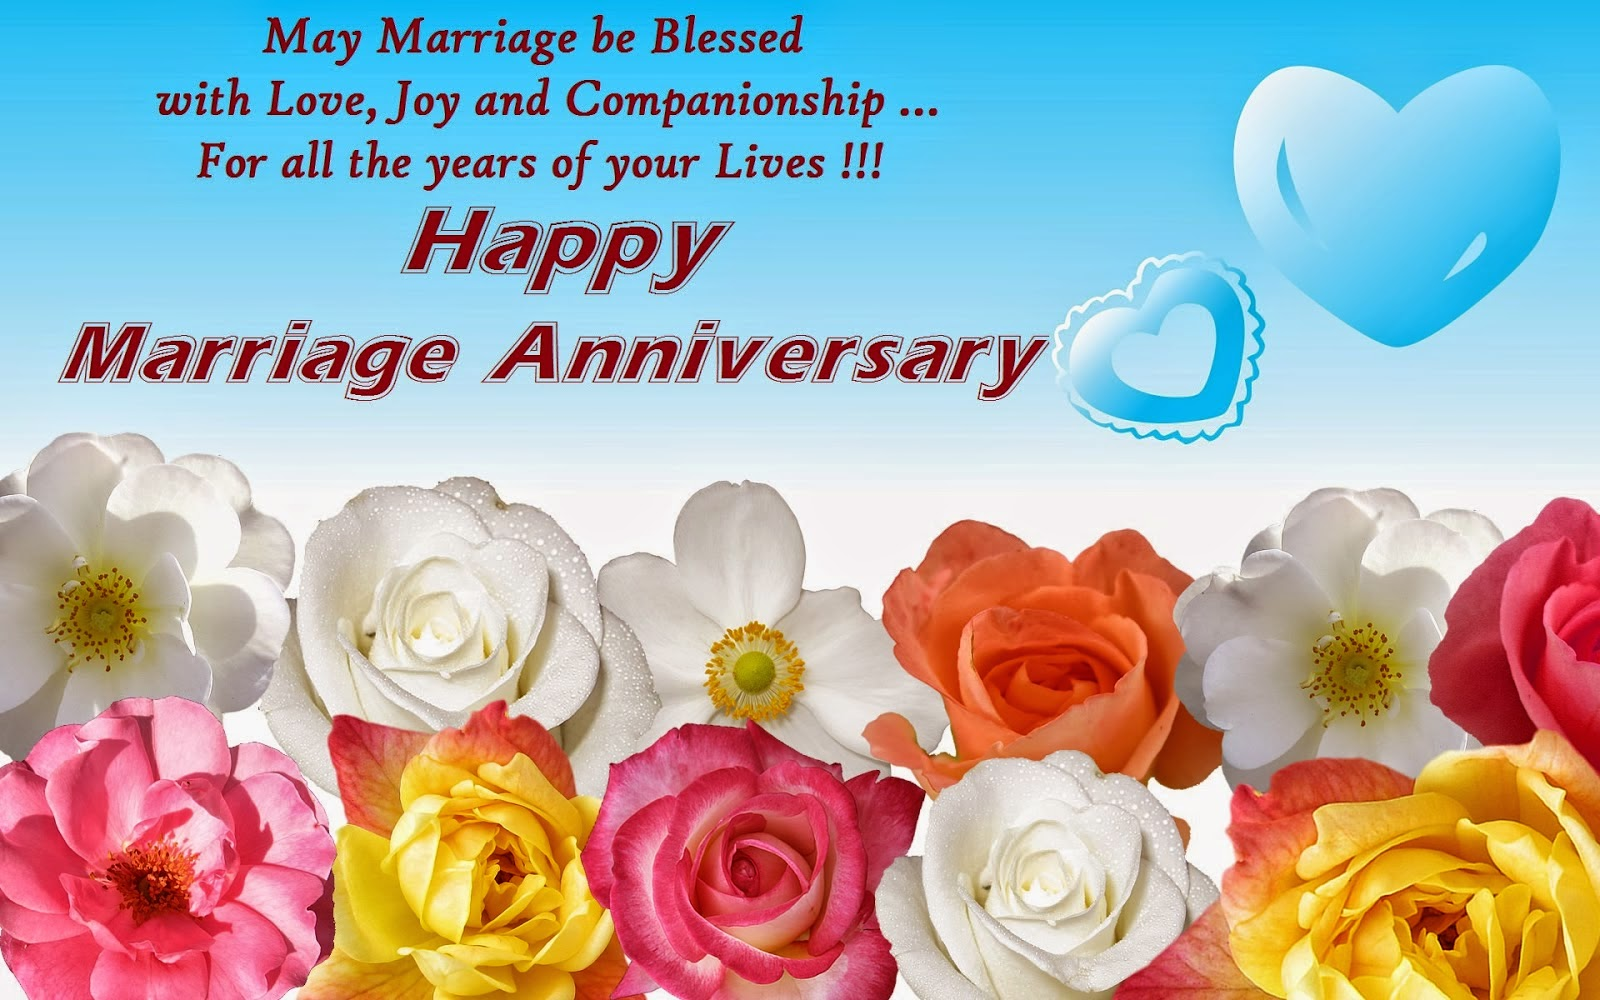 Mind Blowing Marriage Anniversary Wallpaper 2015